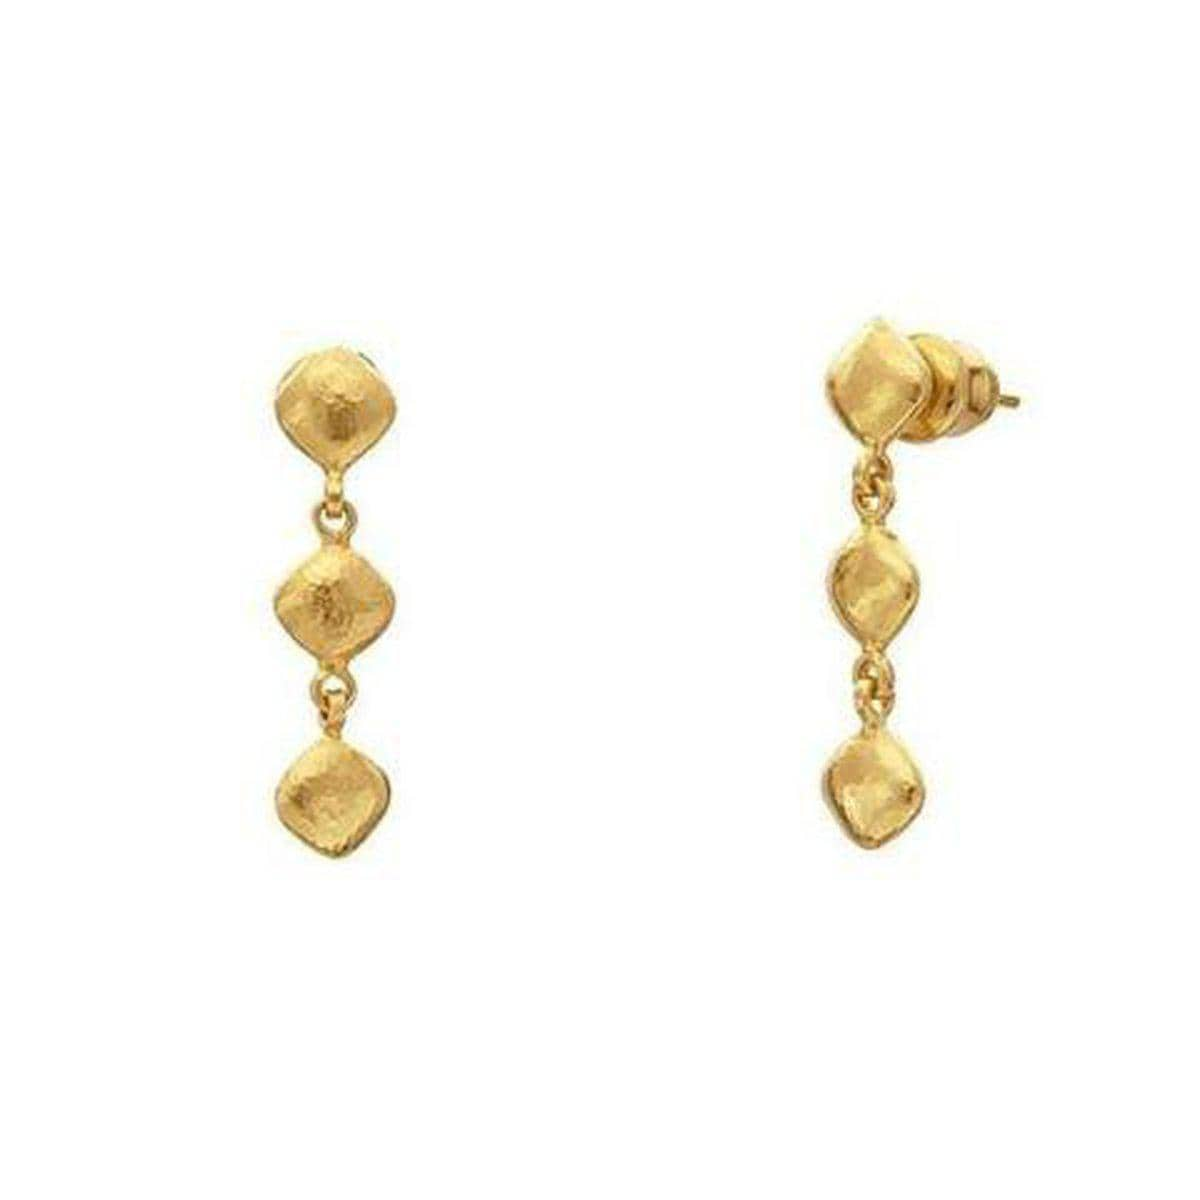 Spell 22K Gold Earrings - E-3CLT-P